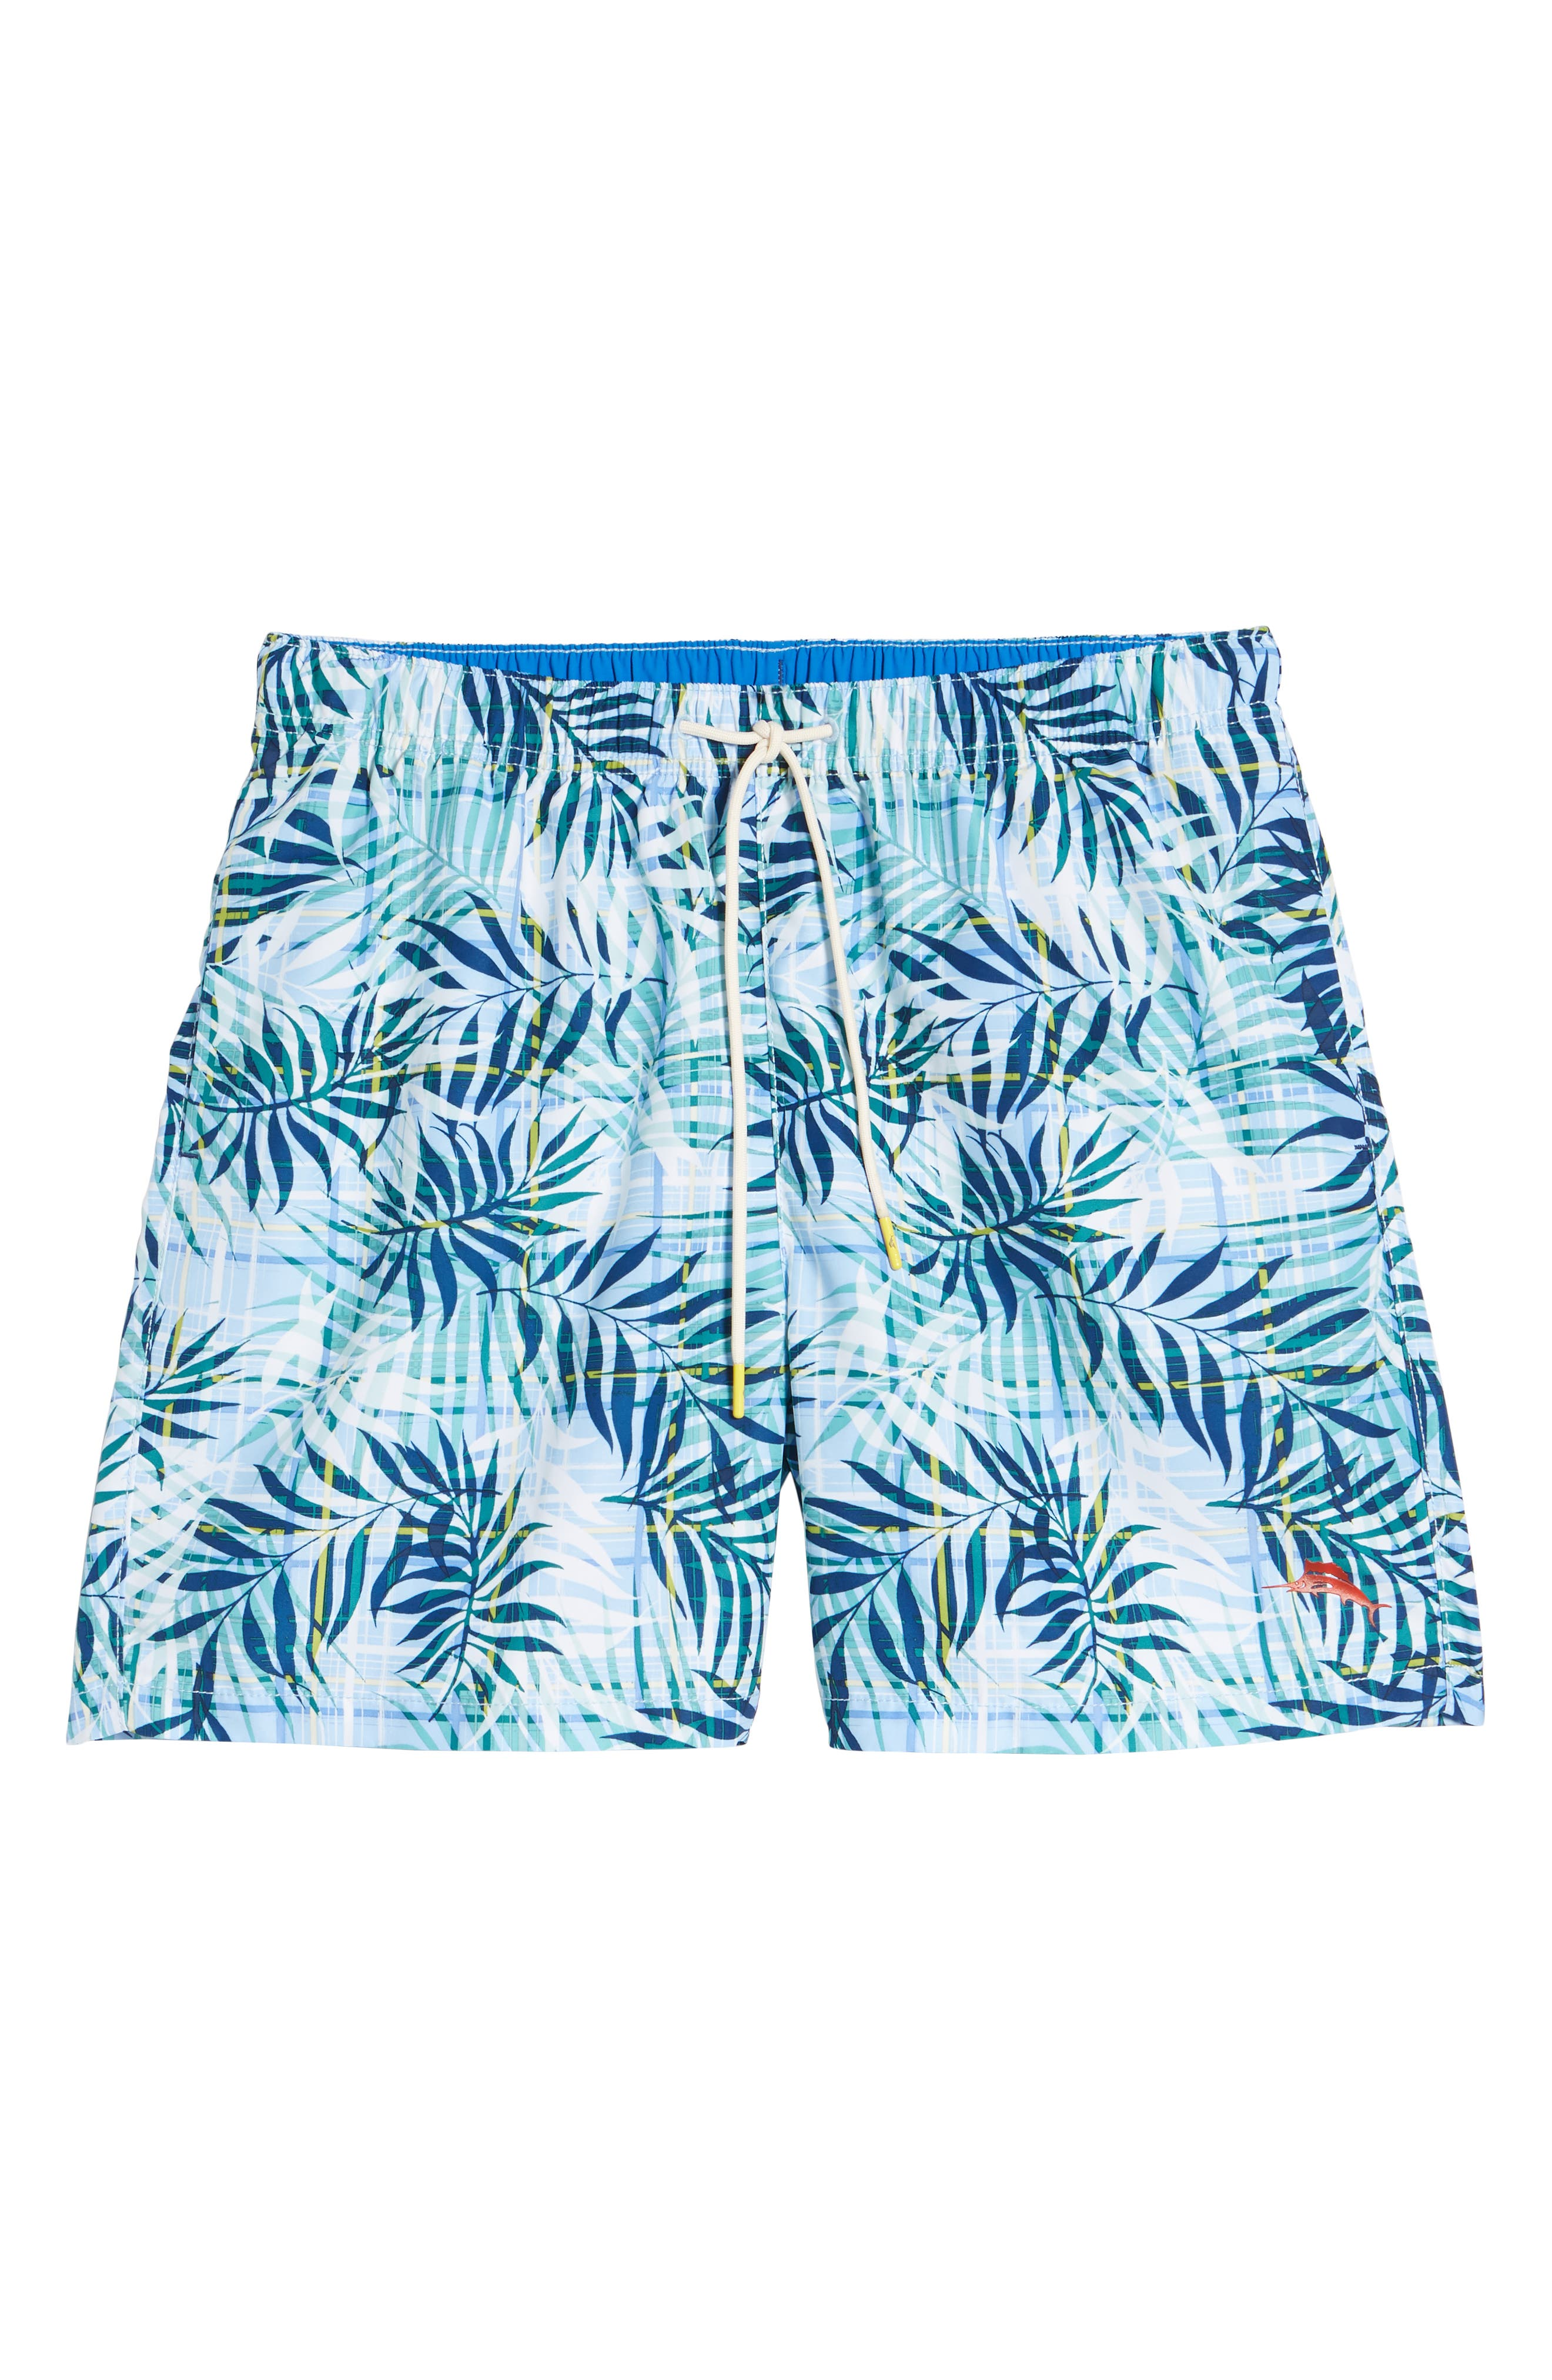 Naples Terraba Swim Trunks,                             Alternate thumbnail 6, color,                             AQUA ICE